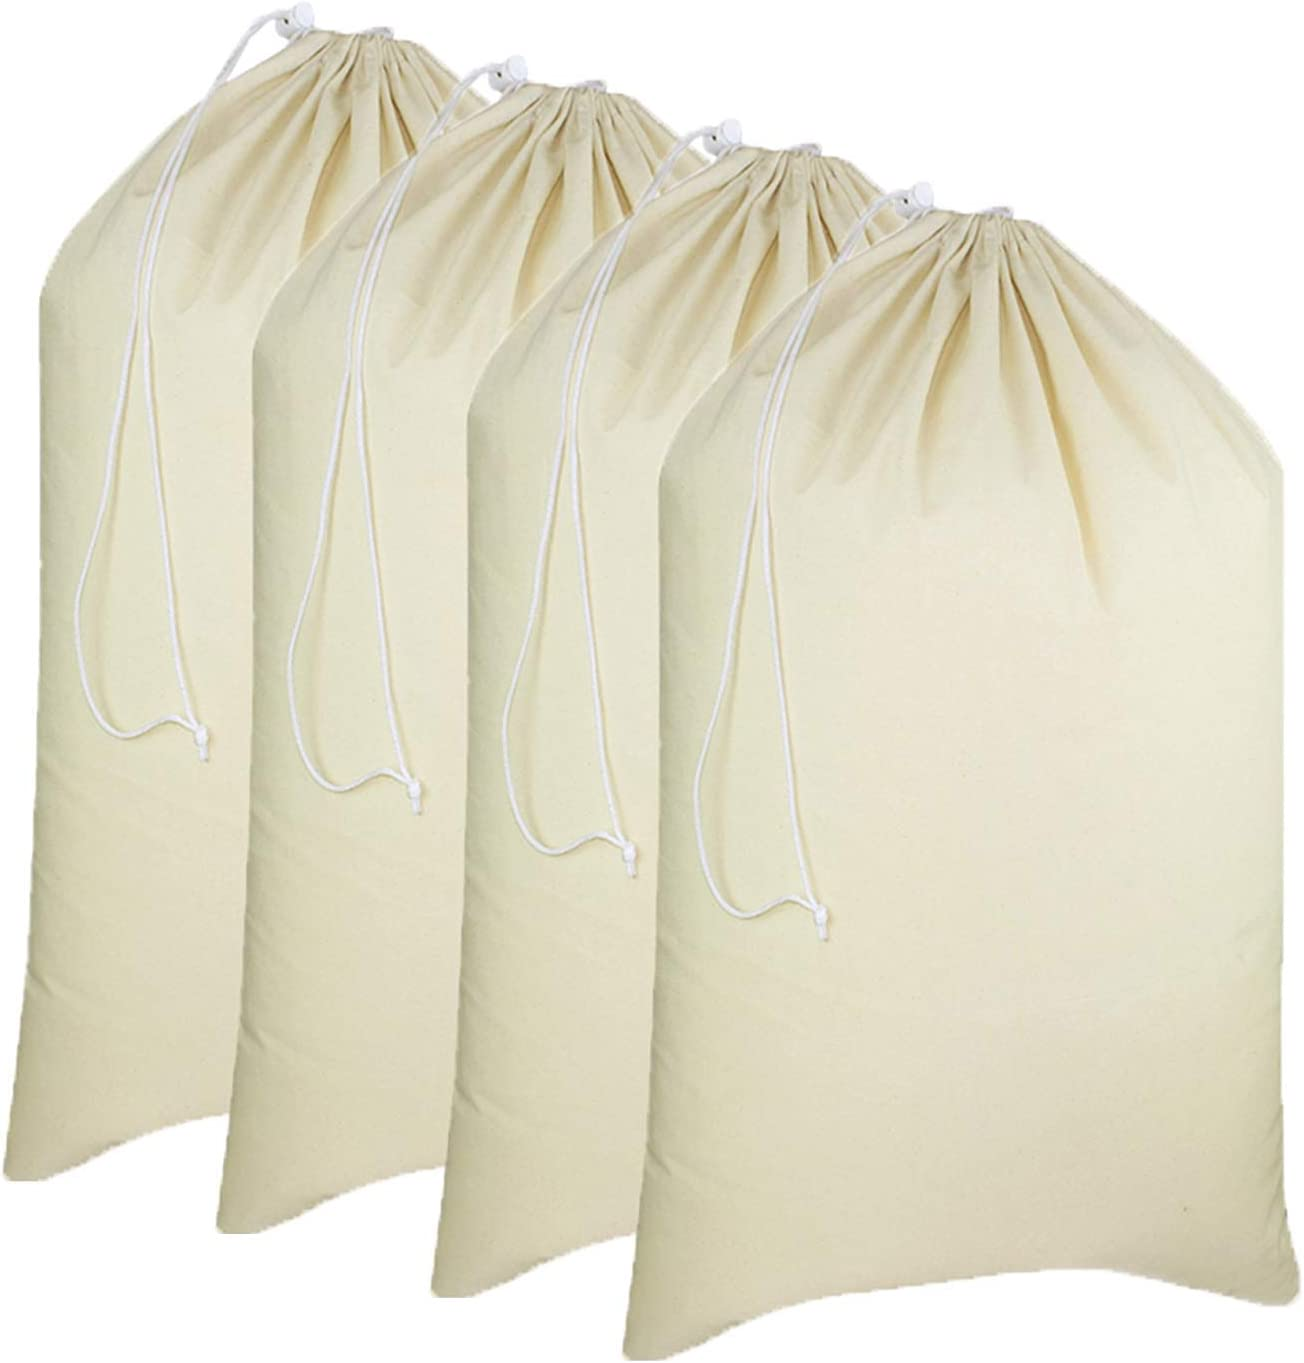 "Simpli-Magic 79164 Canvas Laundry Bags, 28"" x 36"", Natural, 4 Pack"